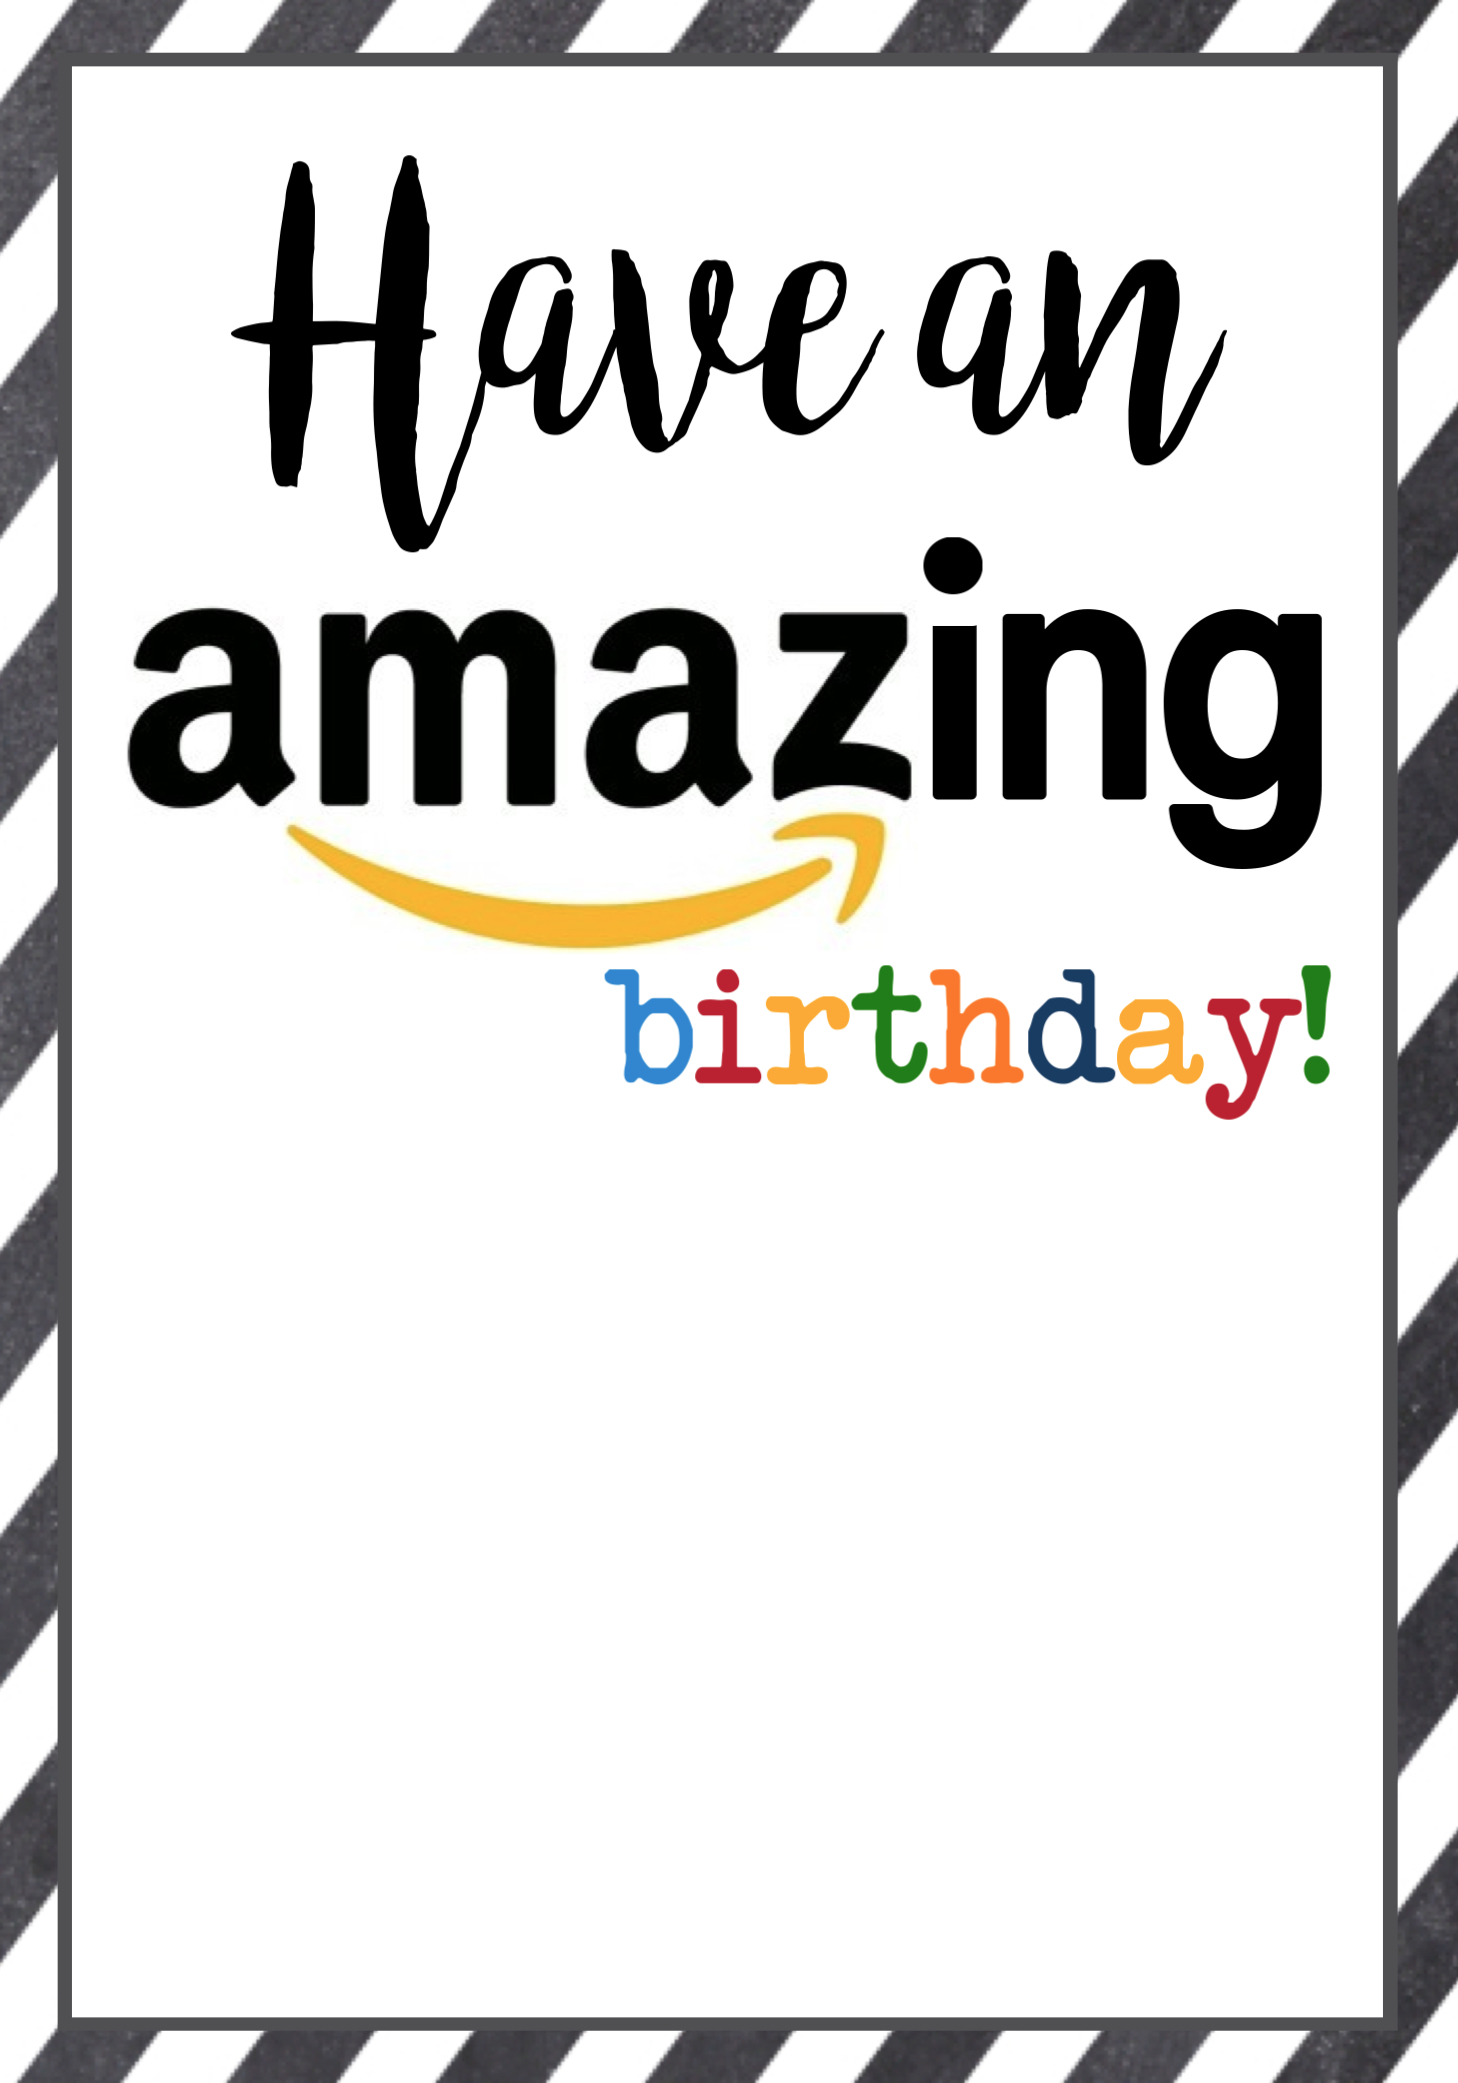 Amazon birthday cards free printable paper trail design you can print the amazon birthday gift cards on back bookmarktalkfo Images